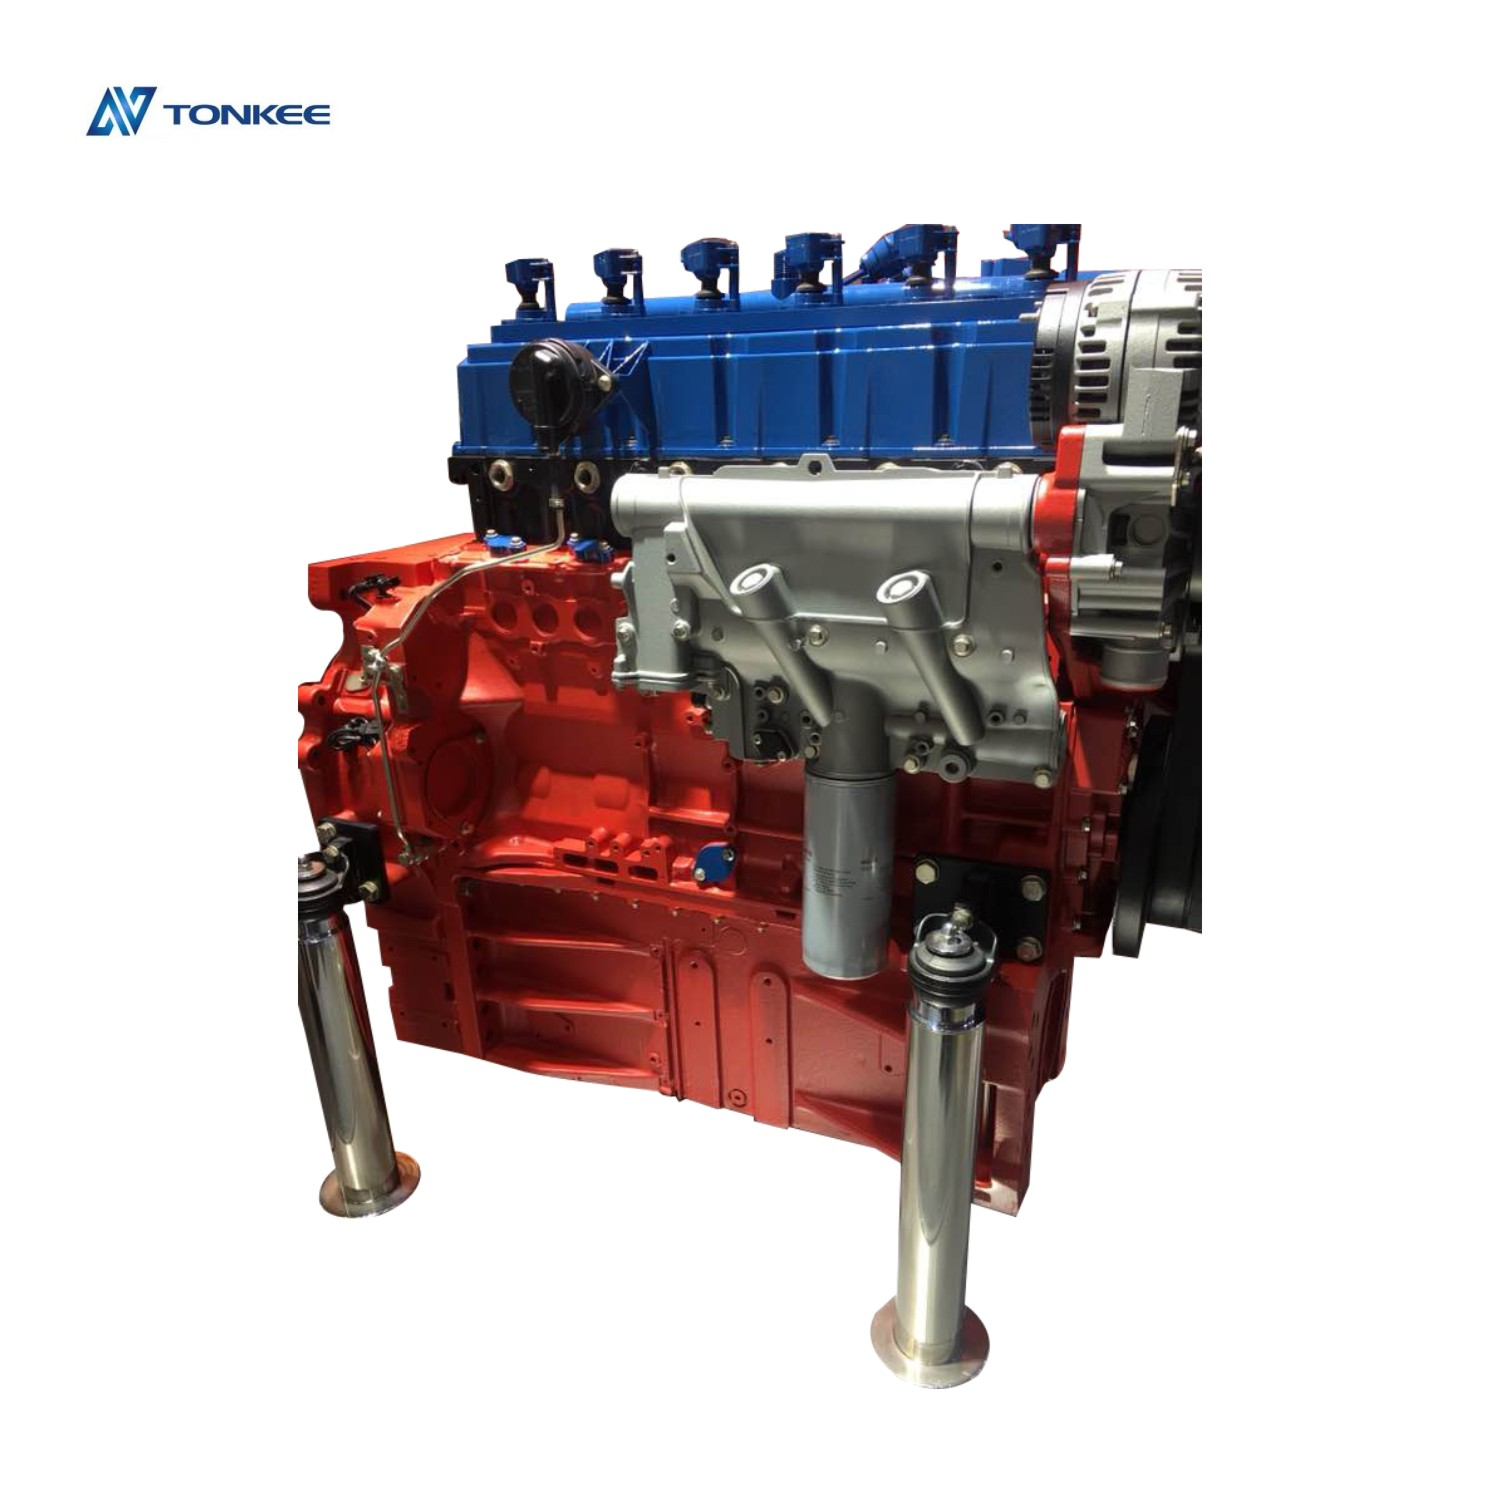 New domestic 350D 300D excavator engine assy D8K excavator engine assy  Volvo excavator engine assy for excavator